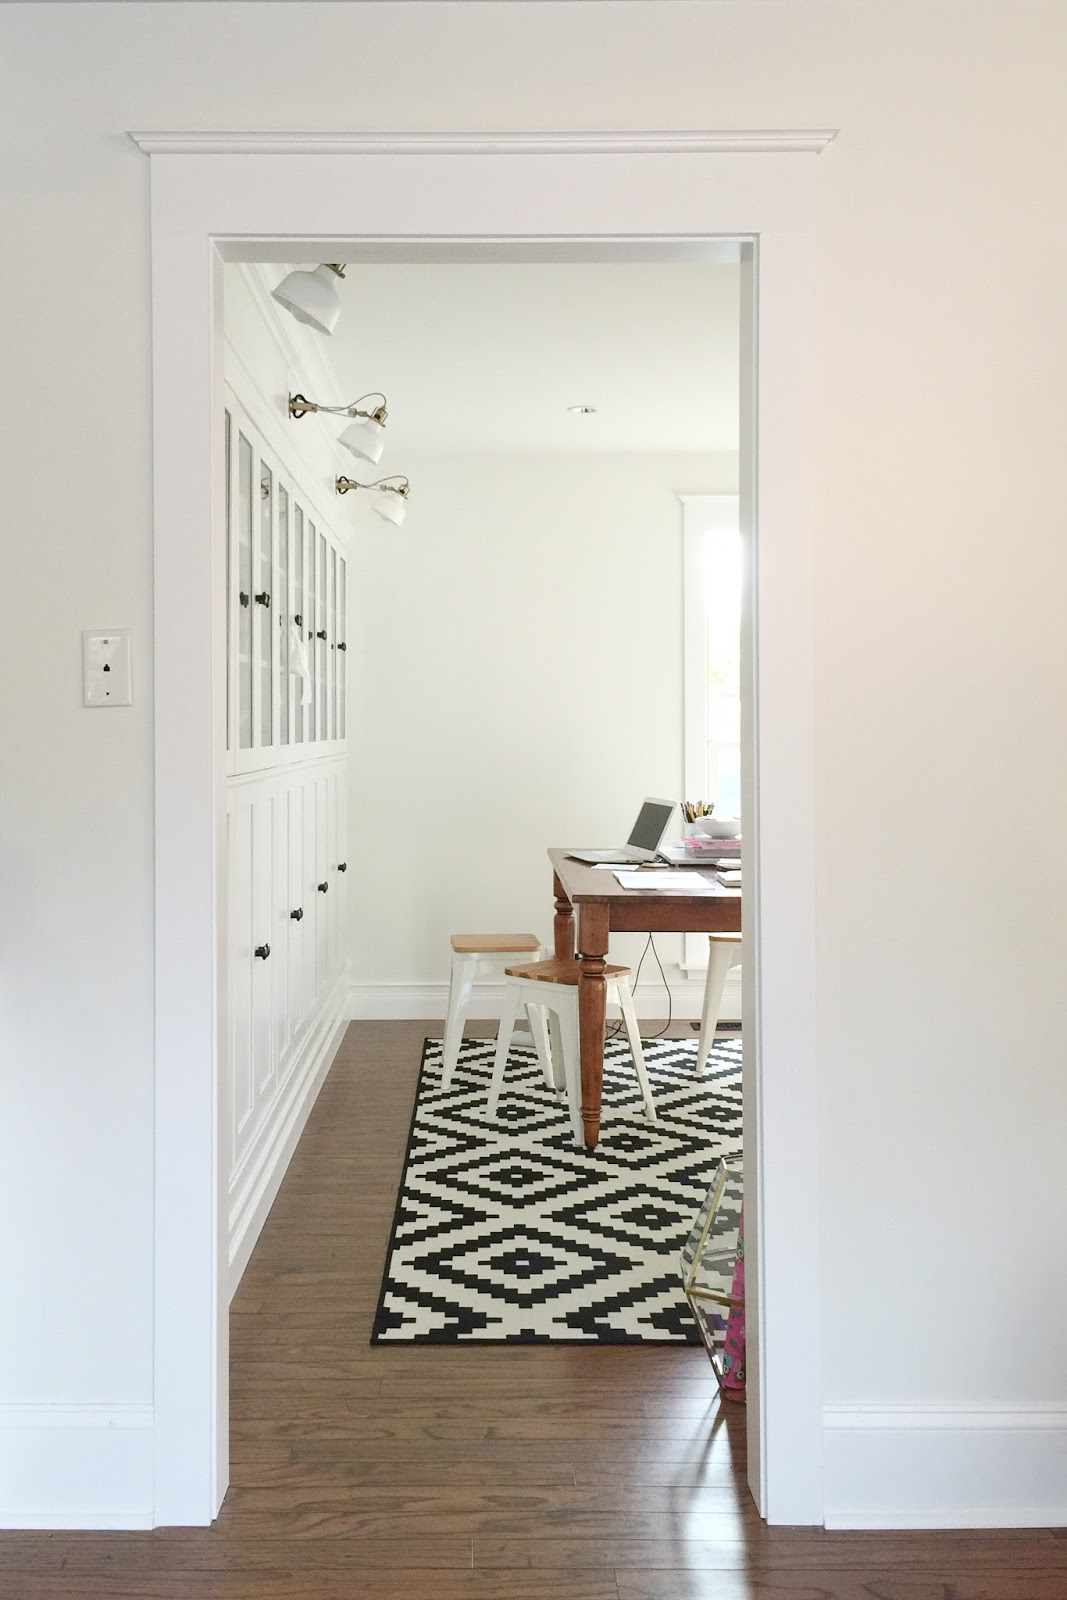 Avery Street Design Blog: DIY Summer School // Updating Doorway Trim